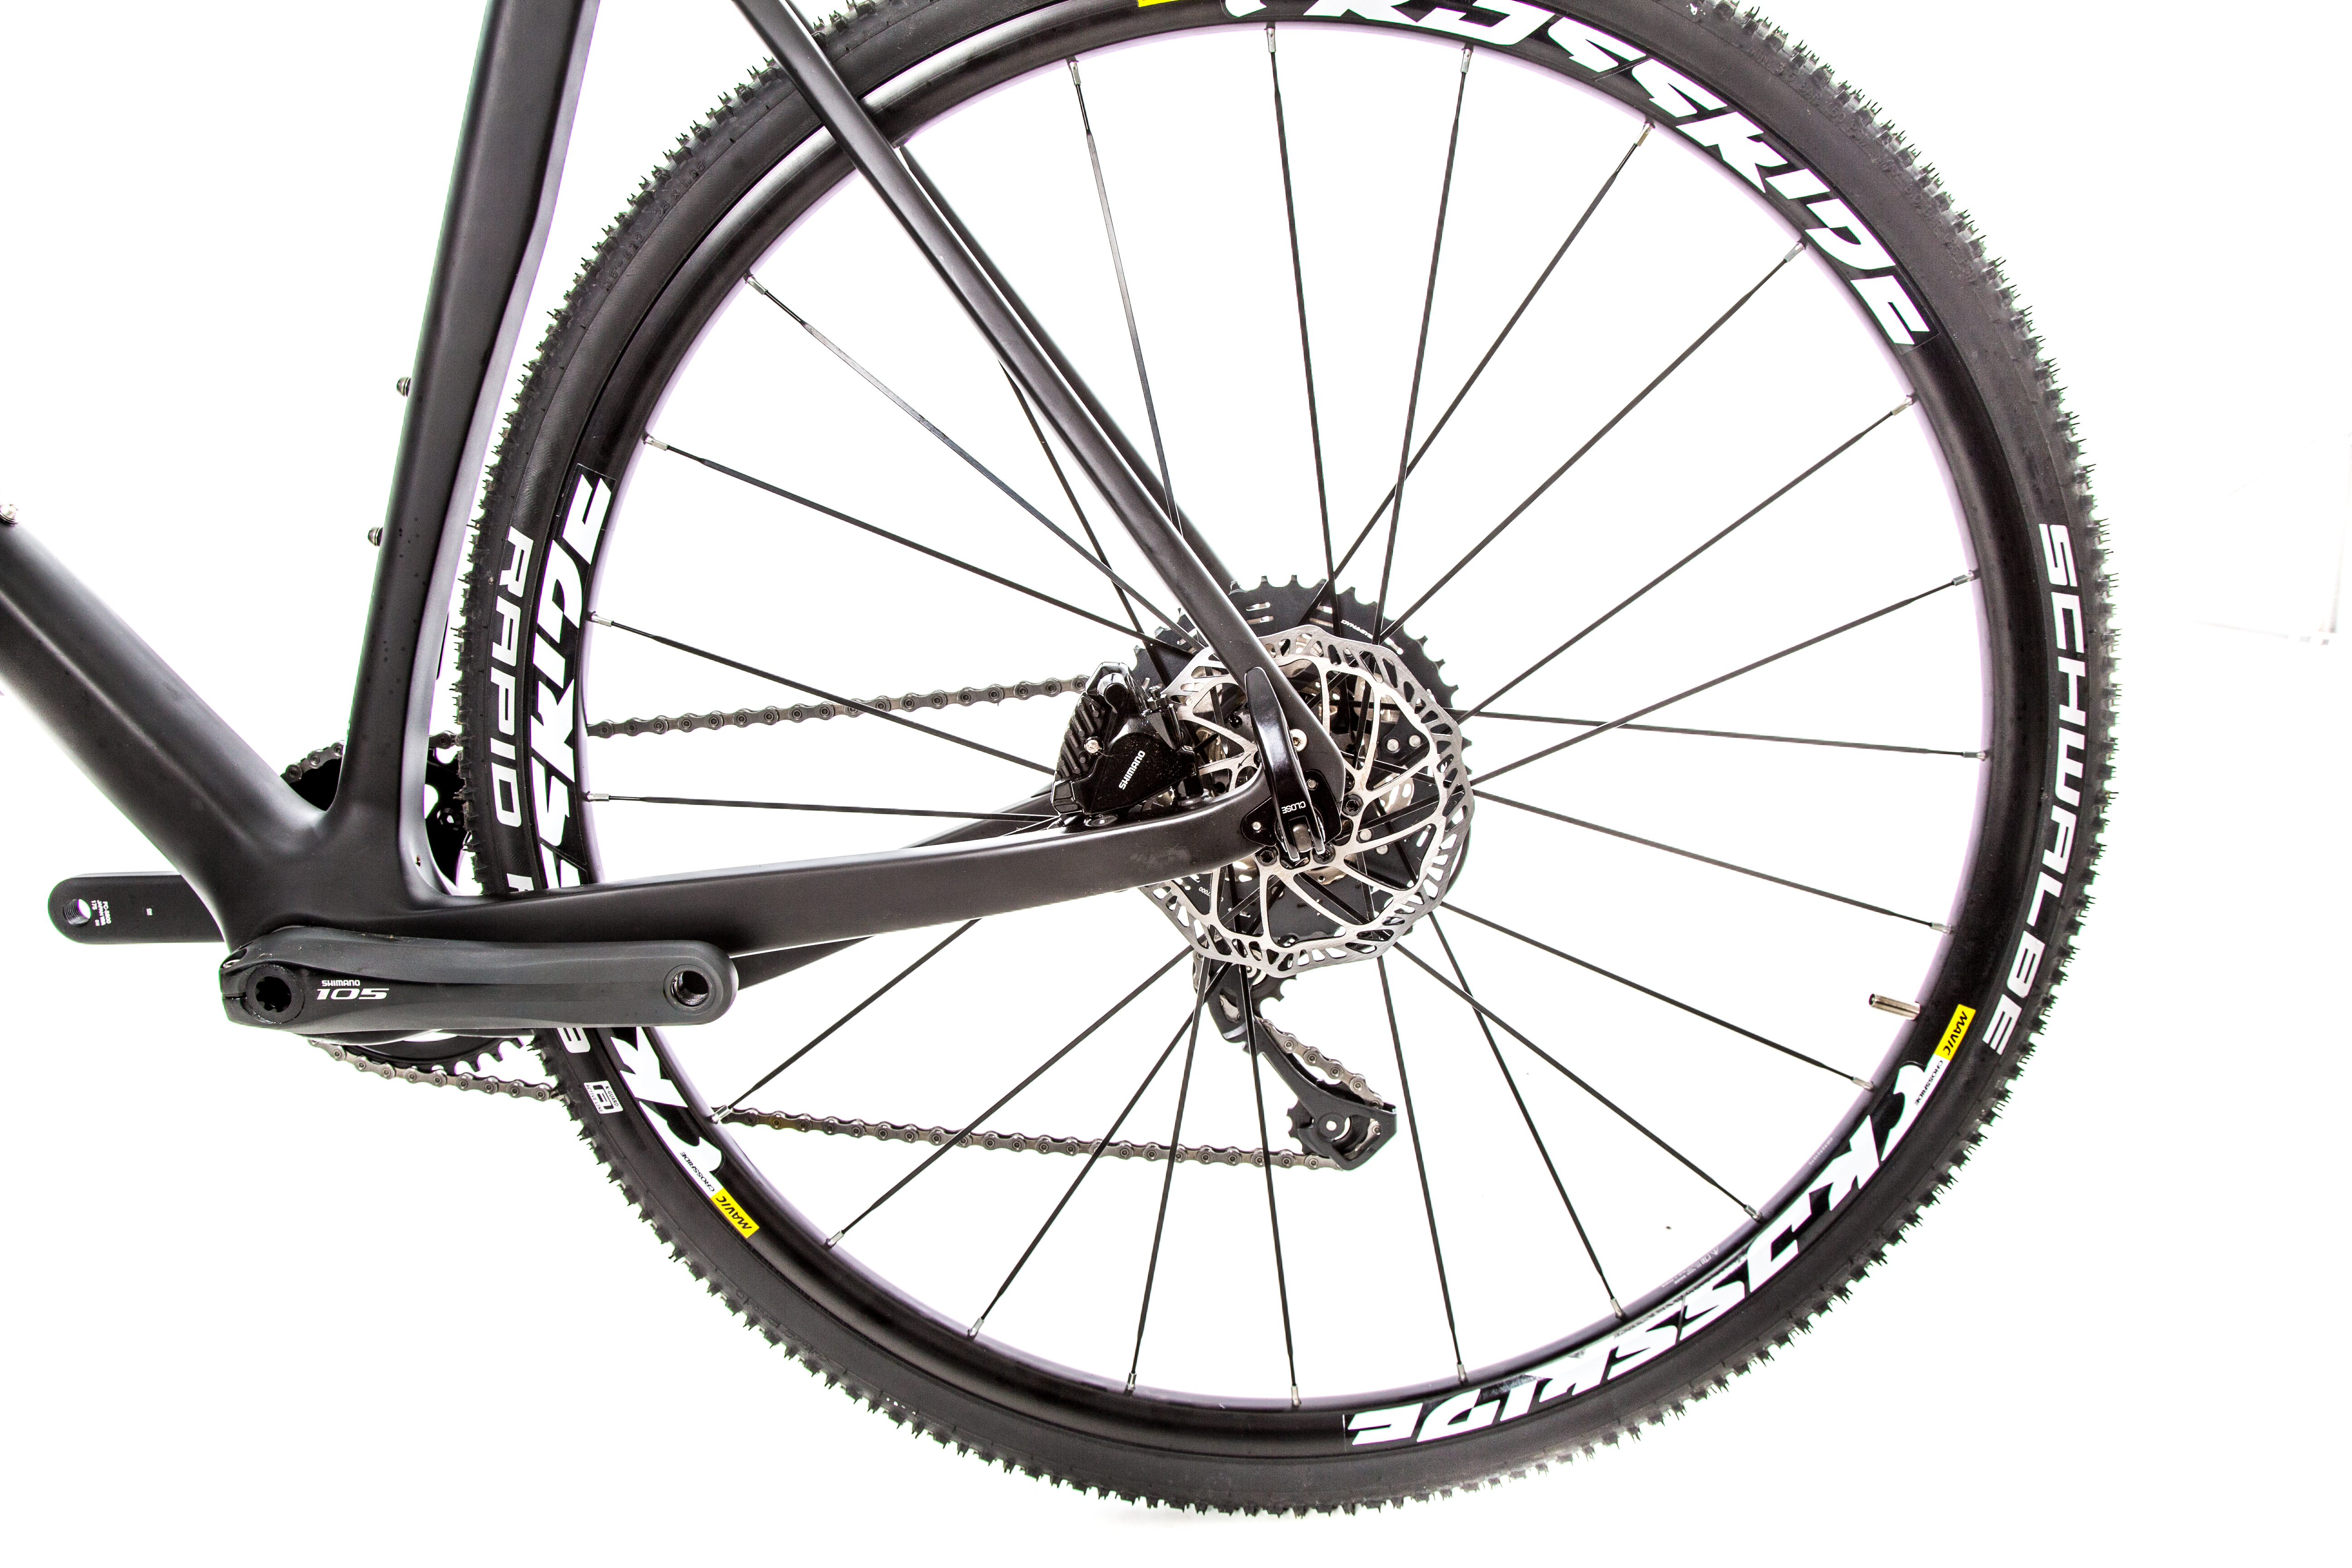 Rear Mavic Wheel